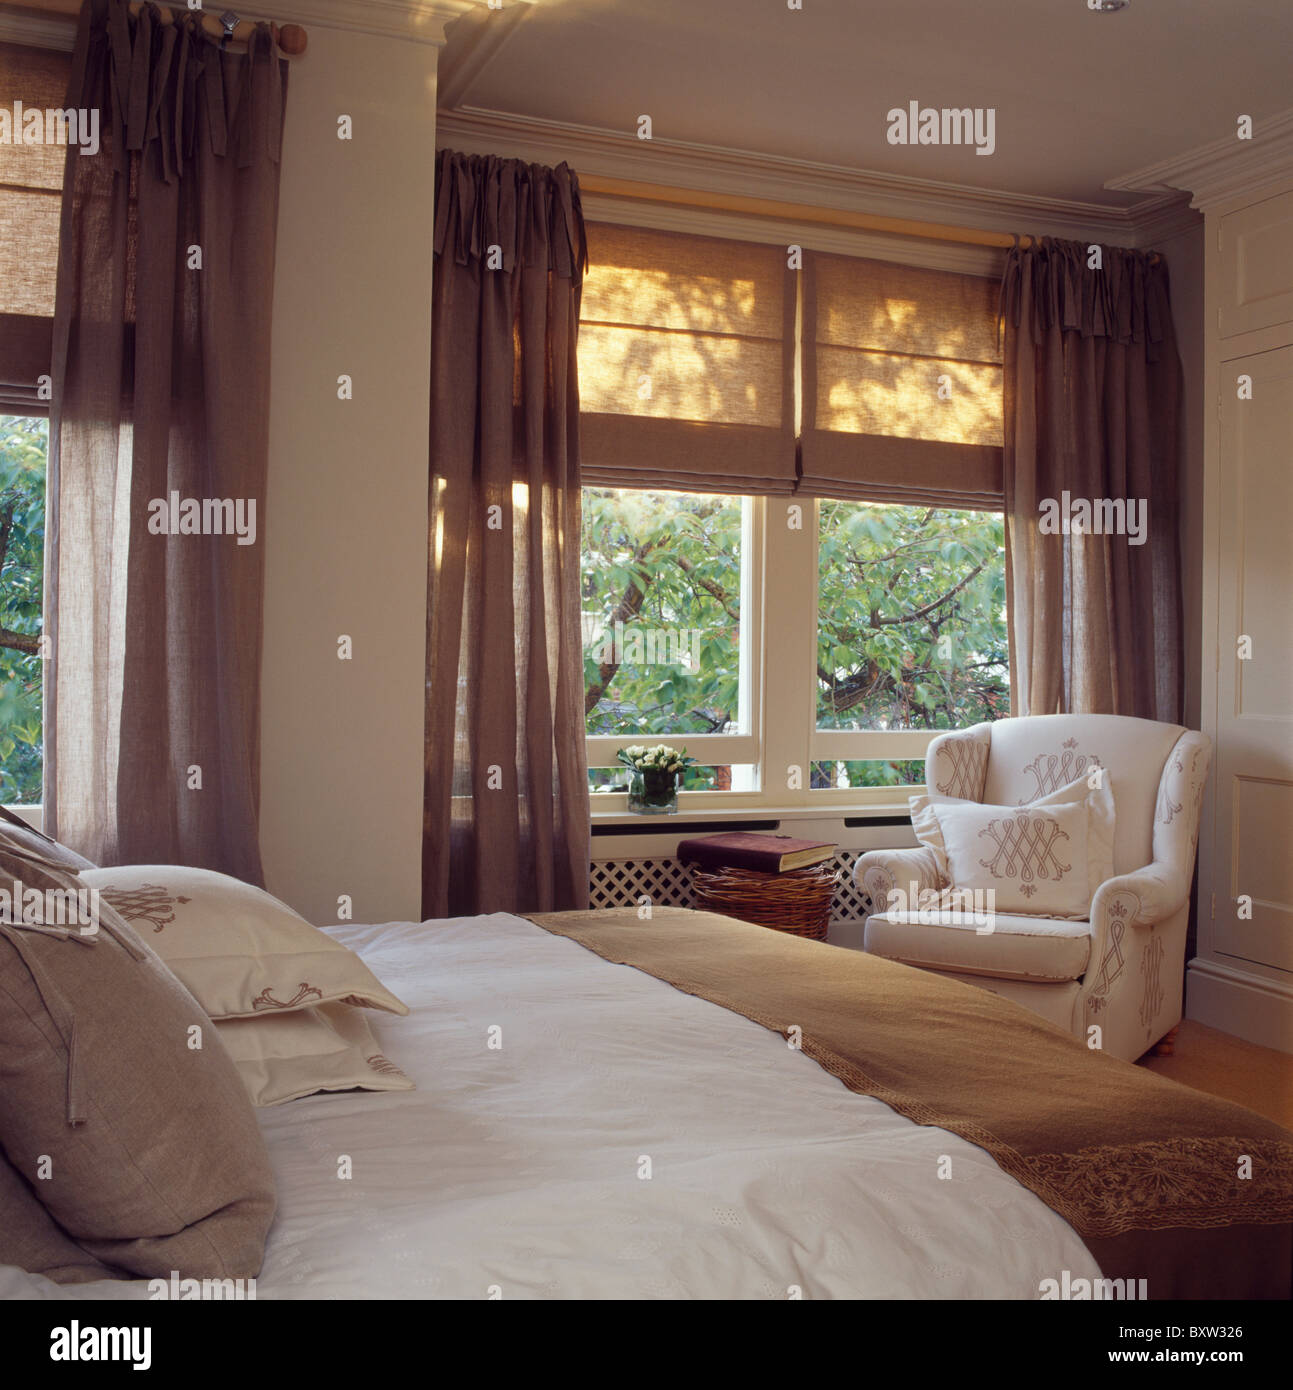 Cream Linen Blinds And Brown Voile Curtains On Windows In